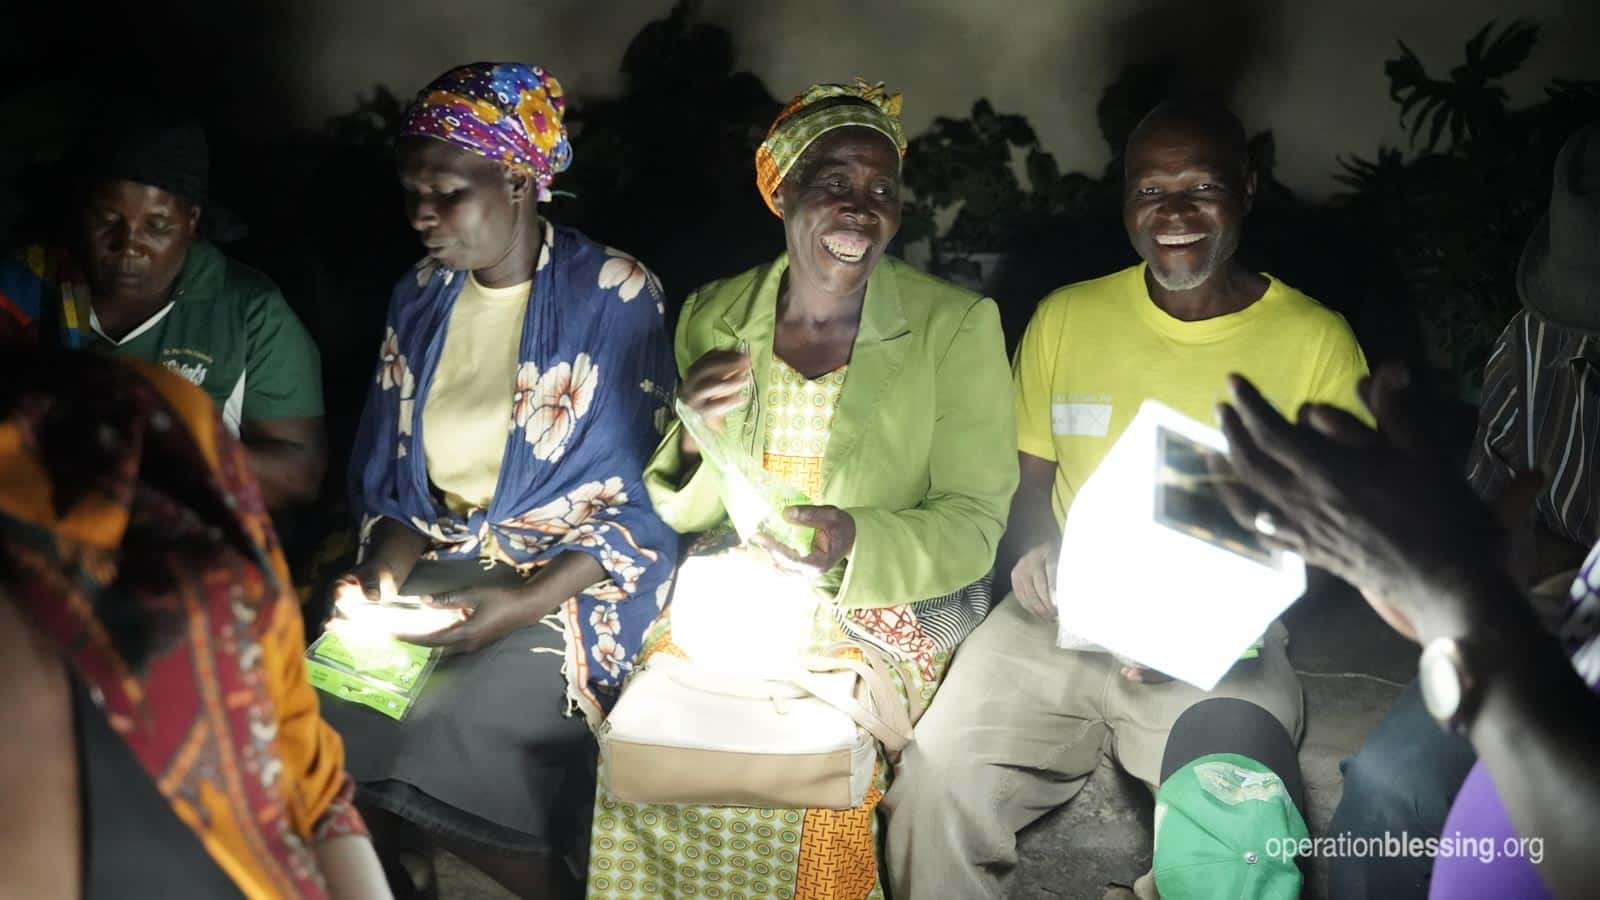 Elderly woman in small village in Zimbabwe receive solar lamps after Cyclone Idai